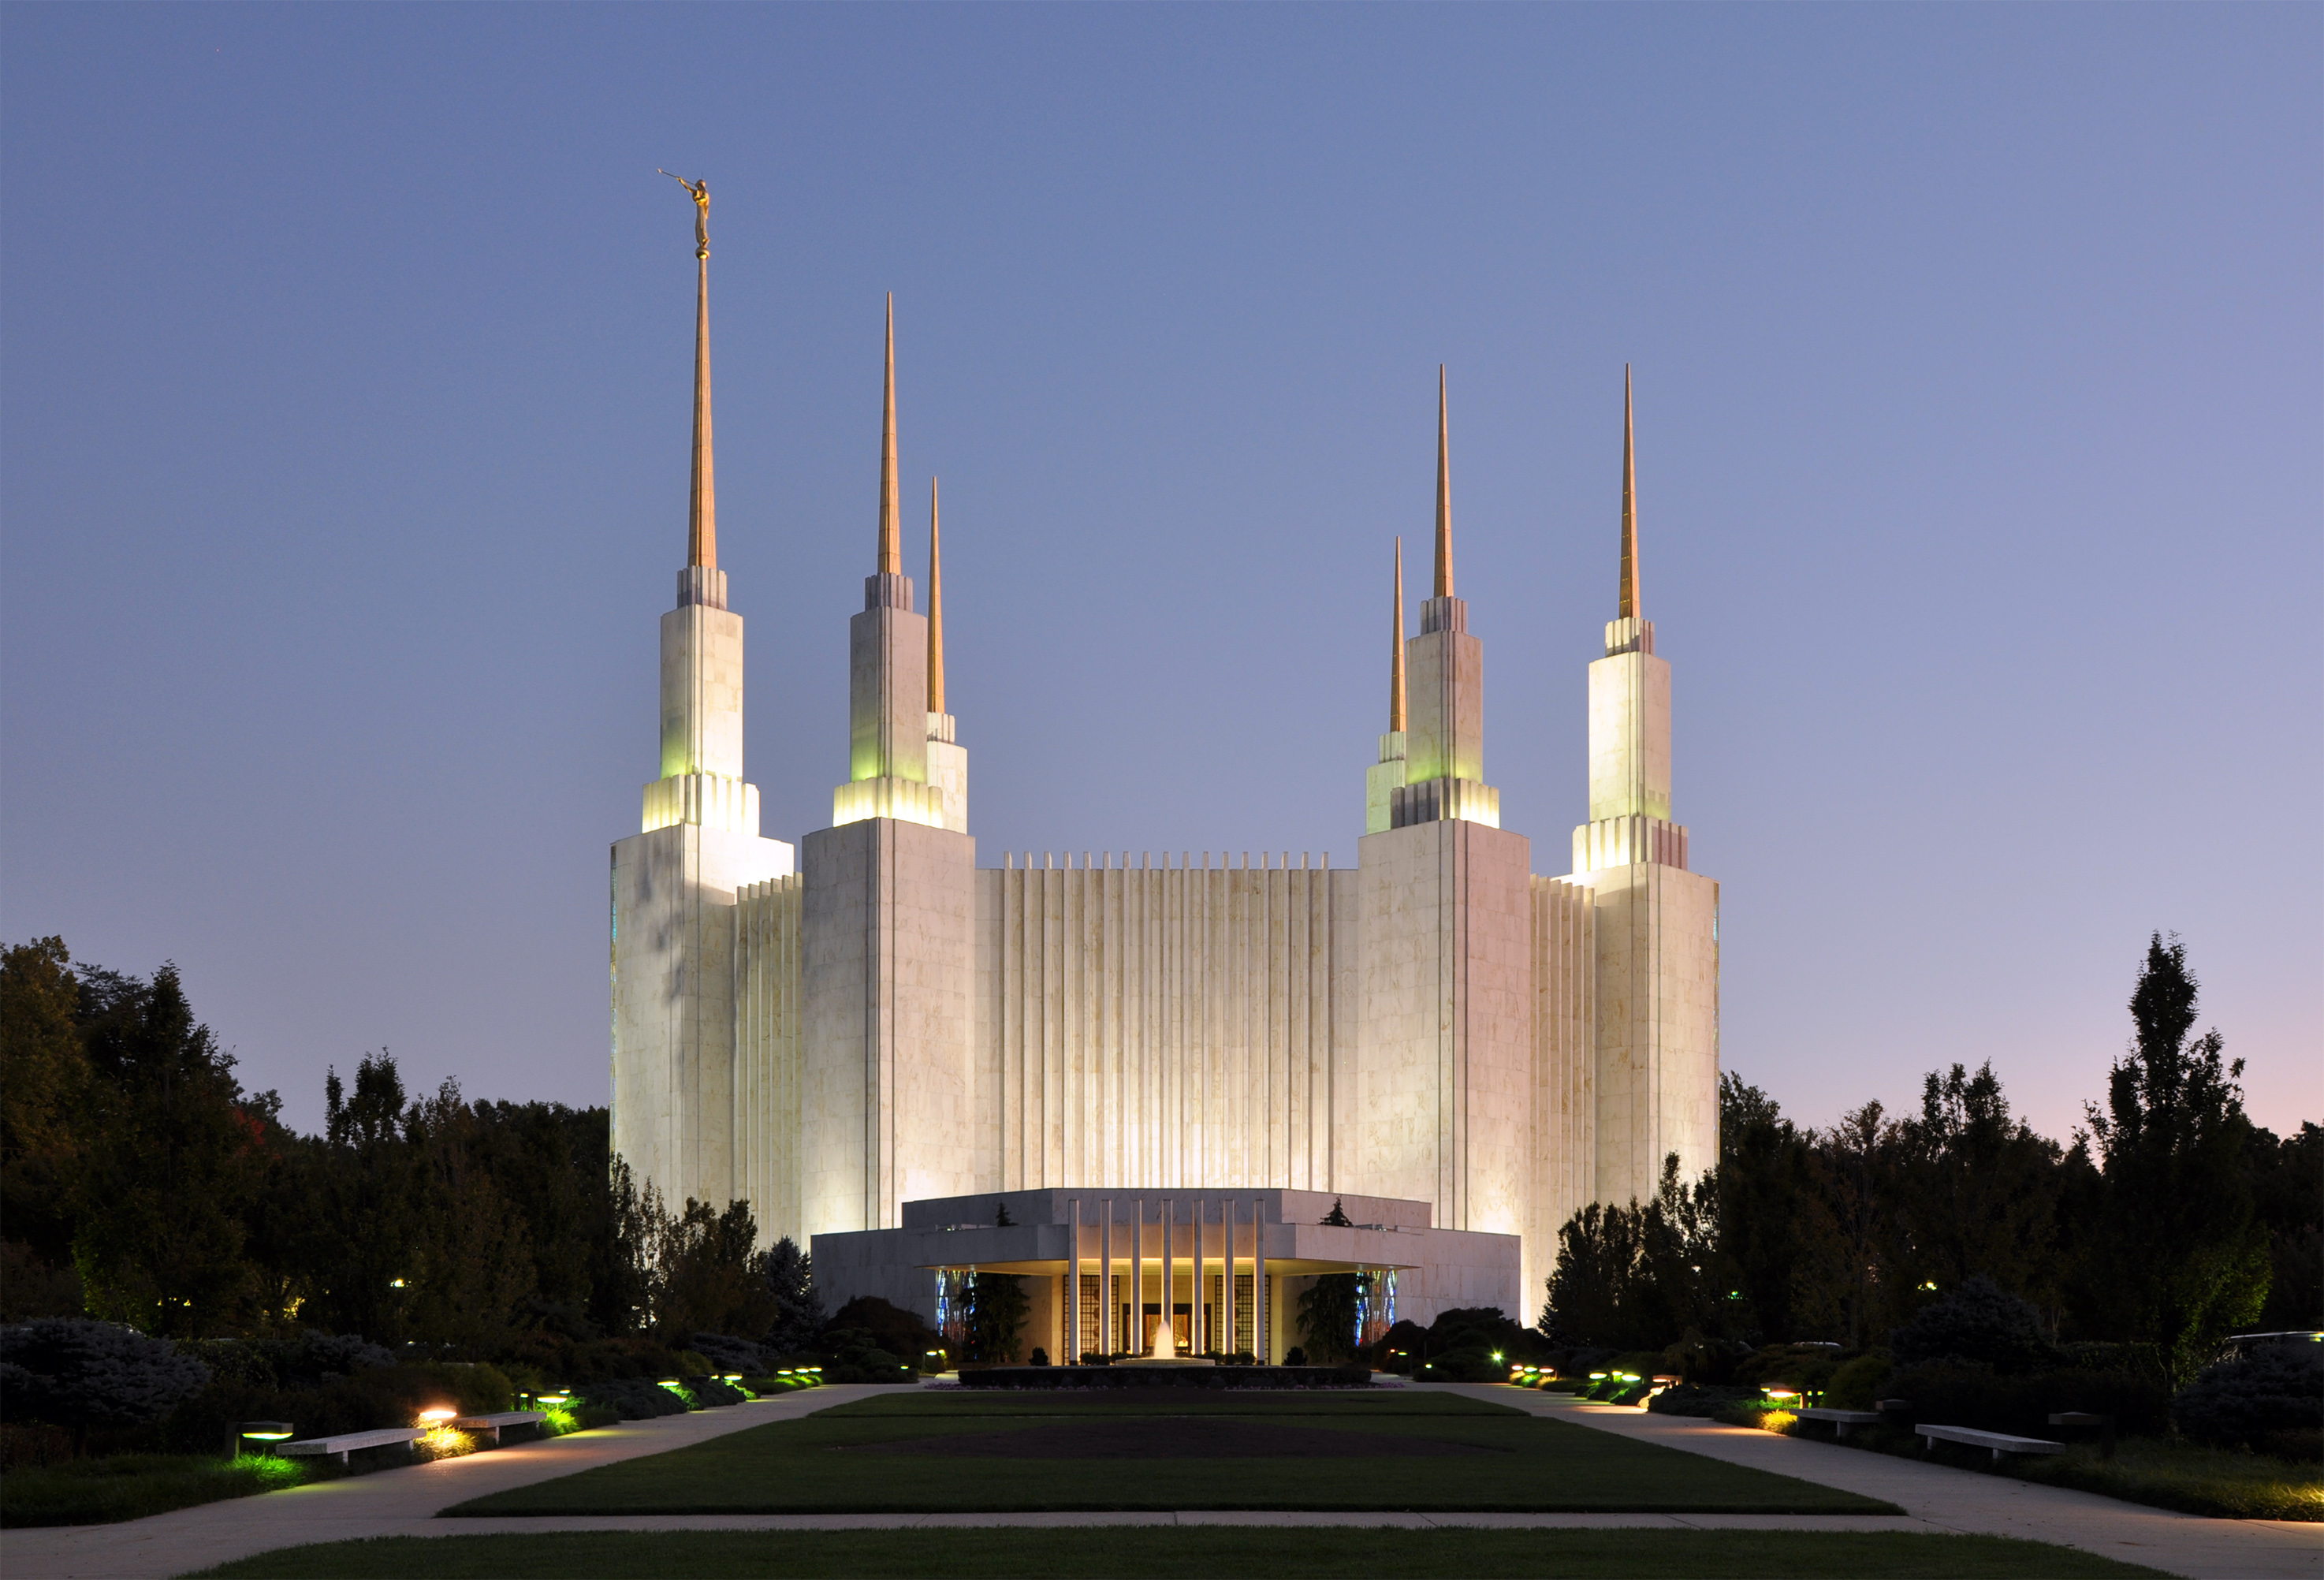 Washington LDS temple by Joe Ravi, Wikimedia Commons (CC BY-SA 3.0)